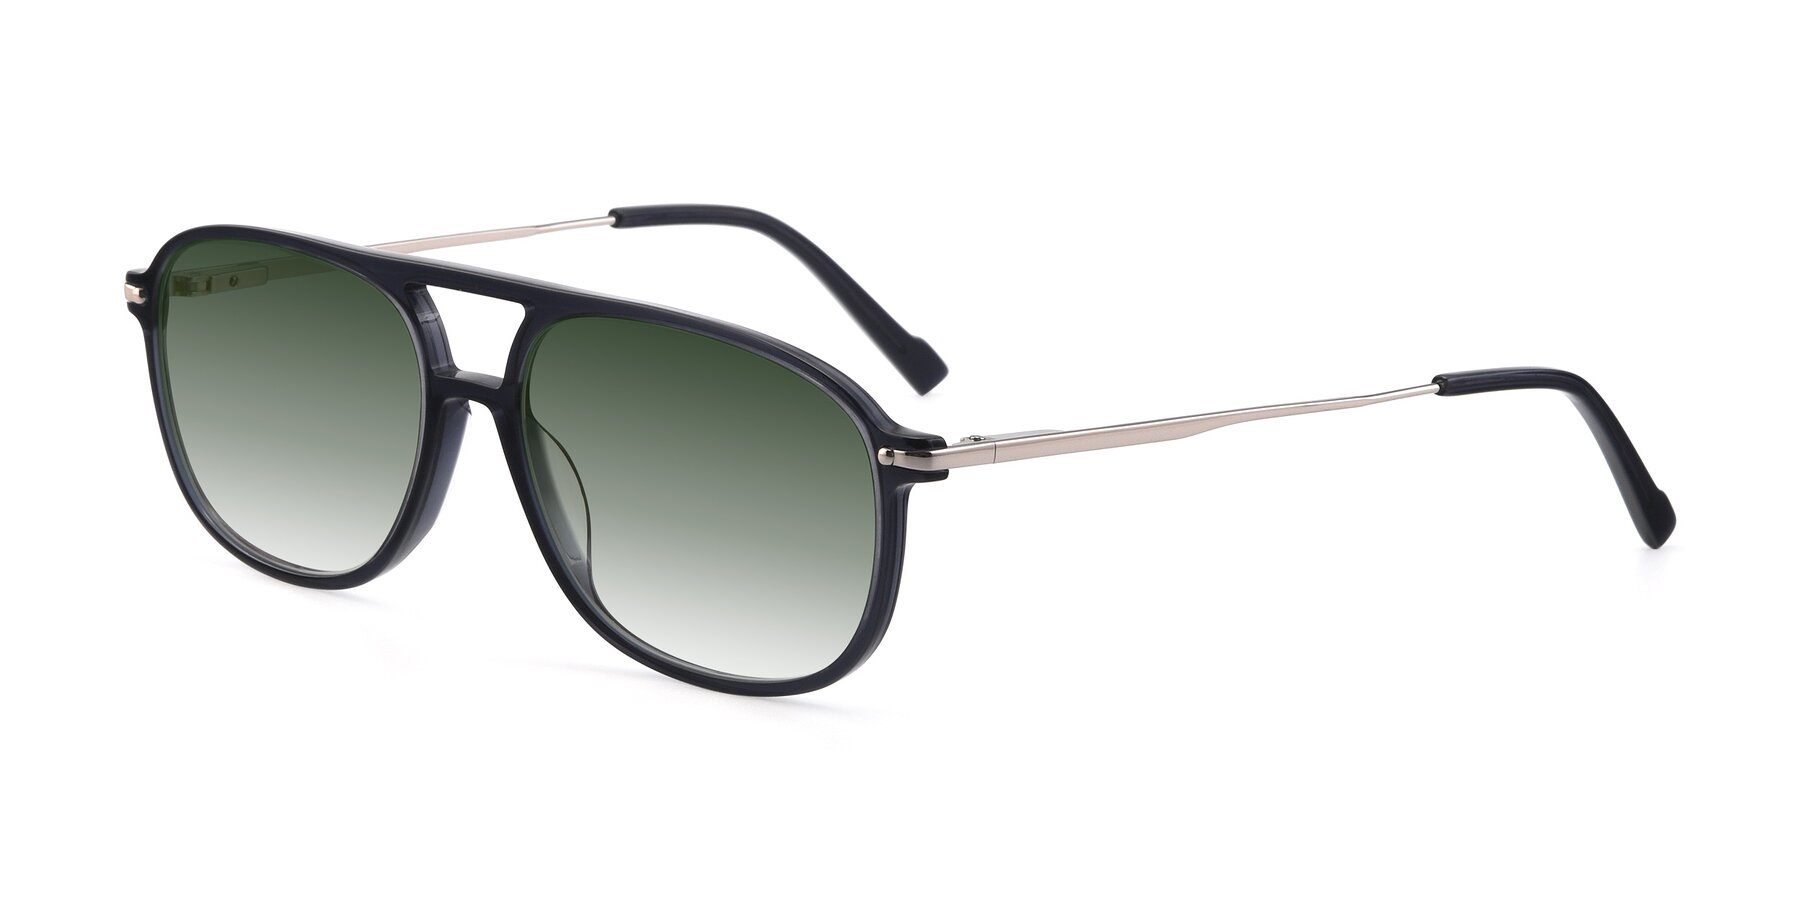 Angle of 17580 in Dark Bluish Gray with Green Gradient Lenses